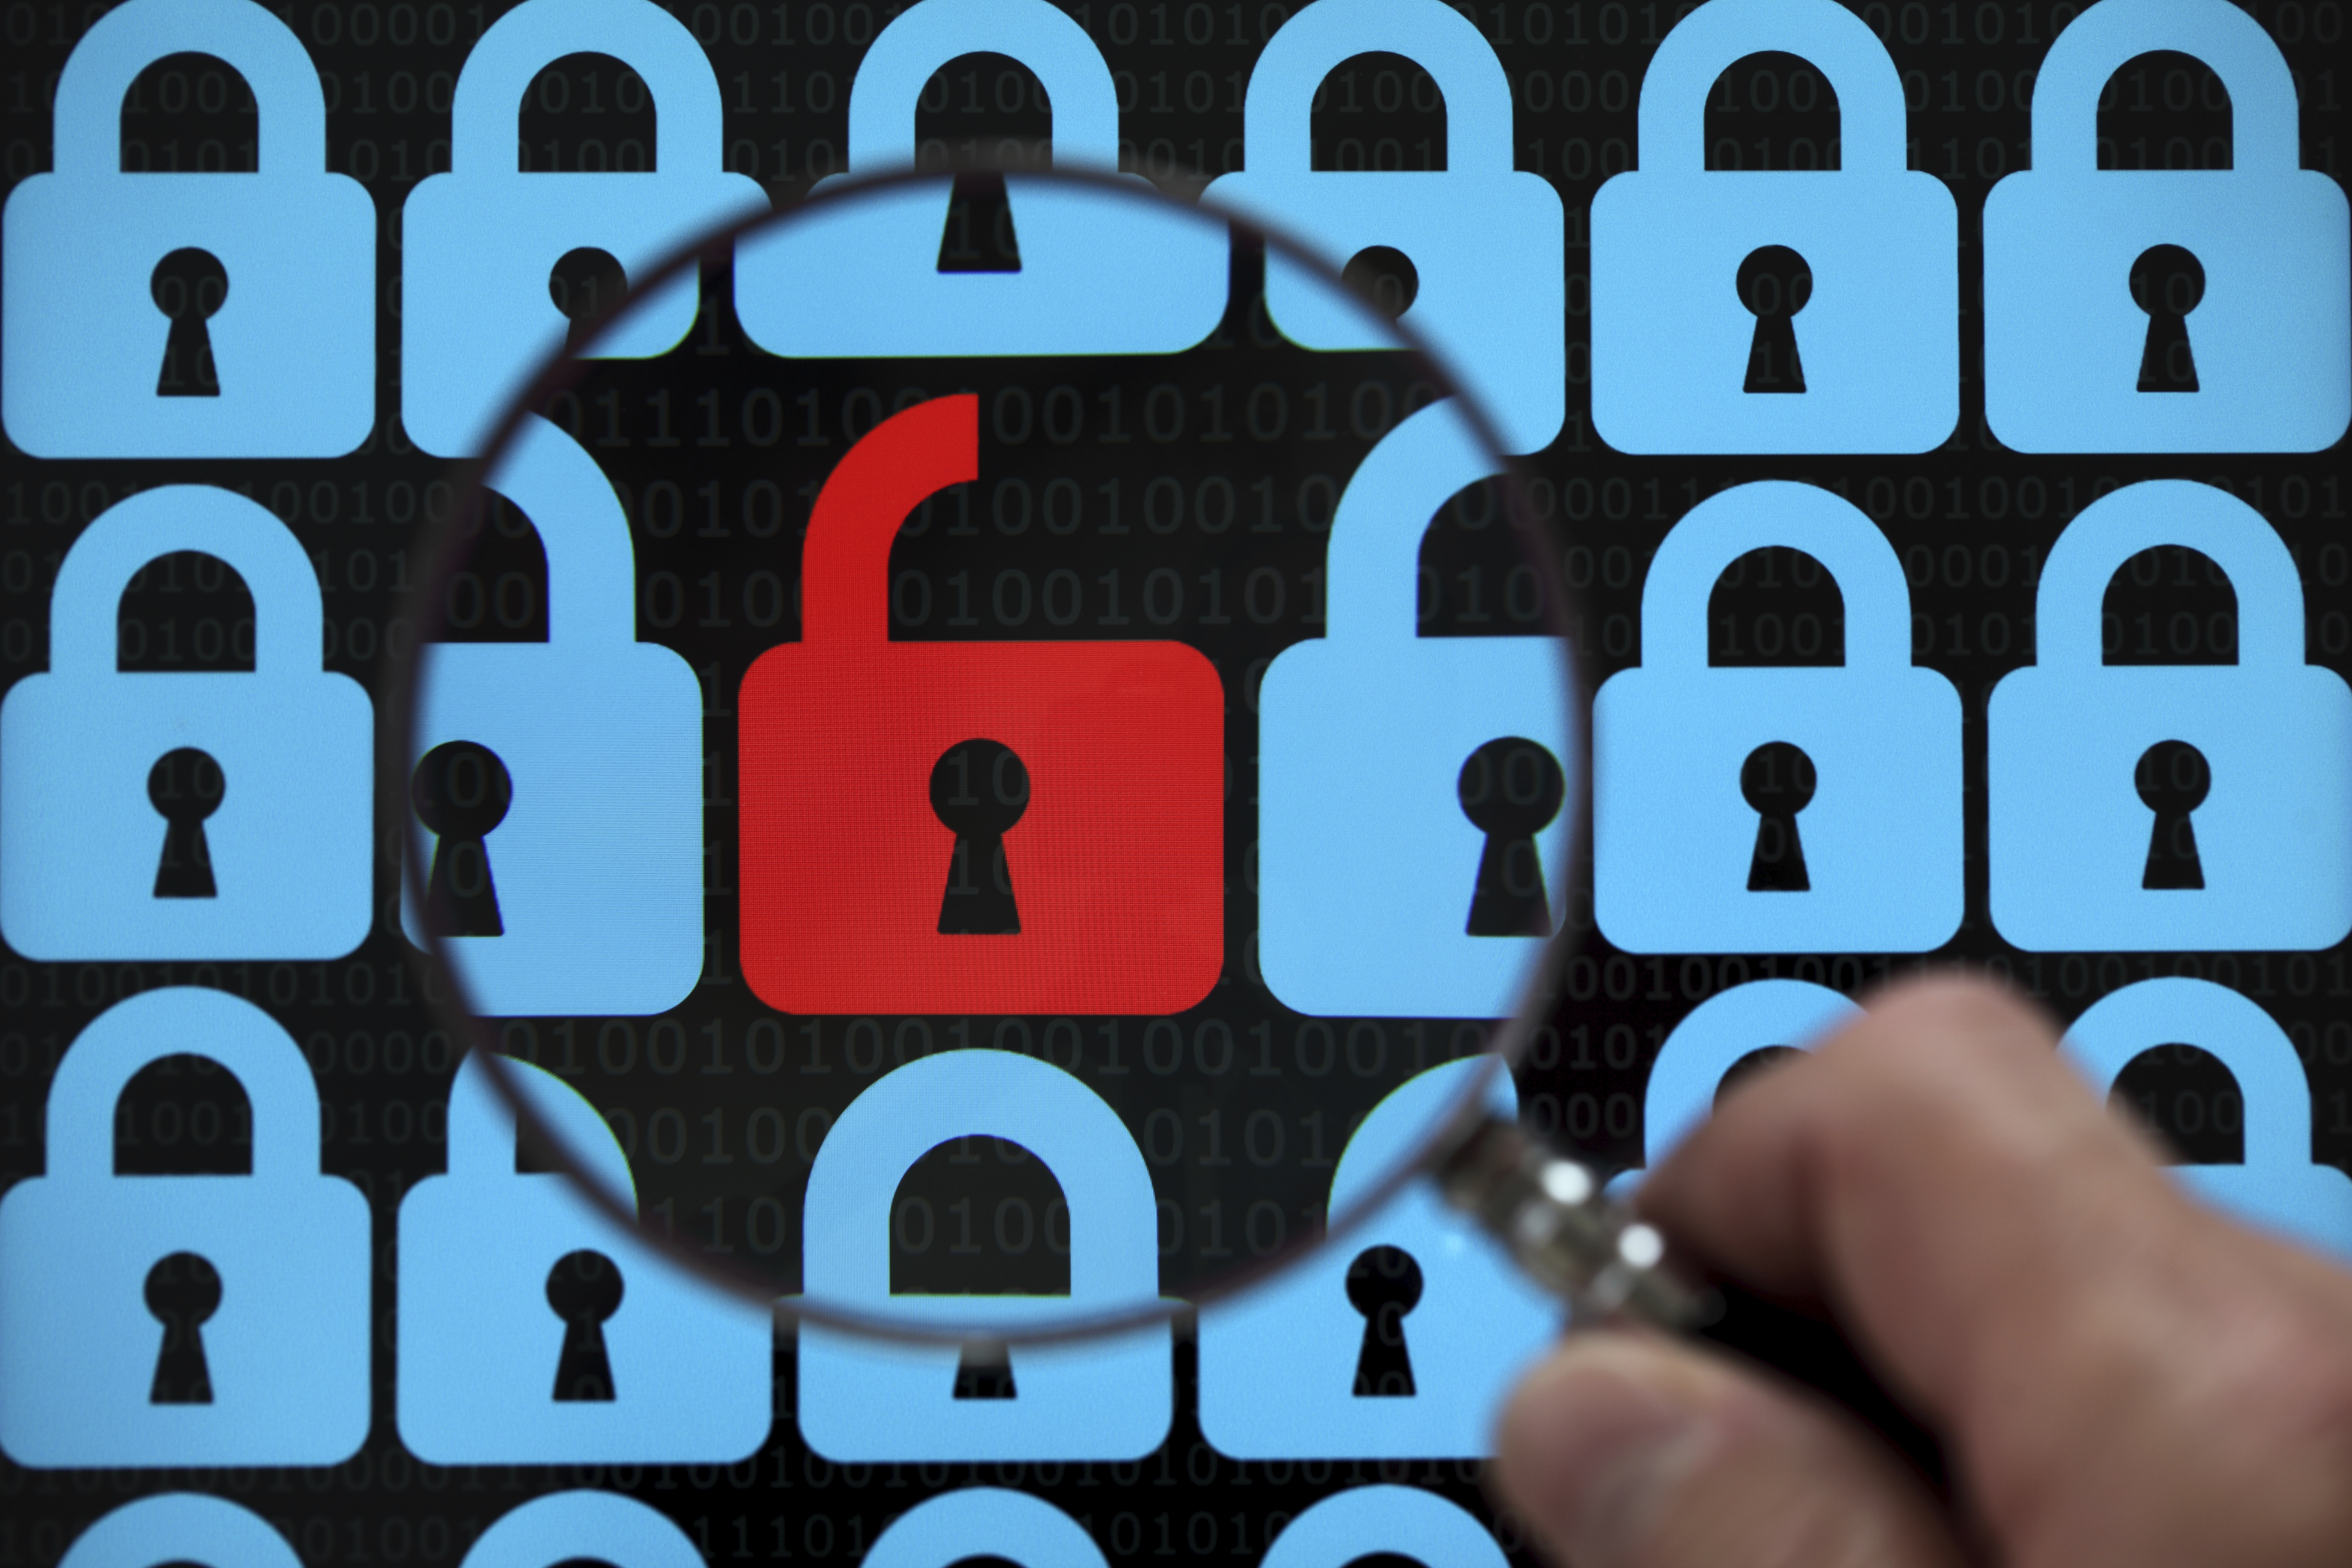 Data Breach Compromises Phi Of 39 000 At Seton Healthcare